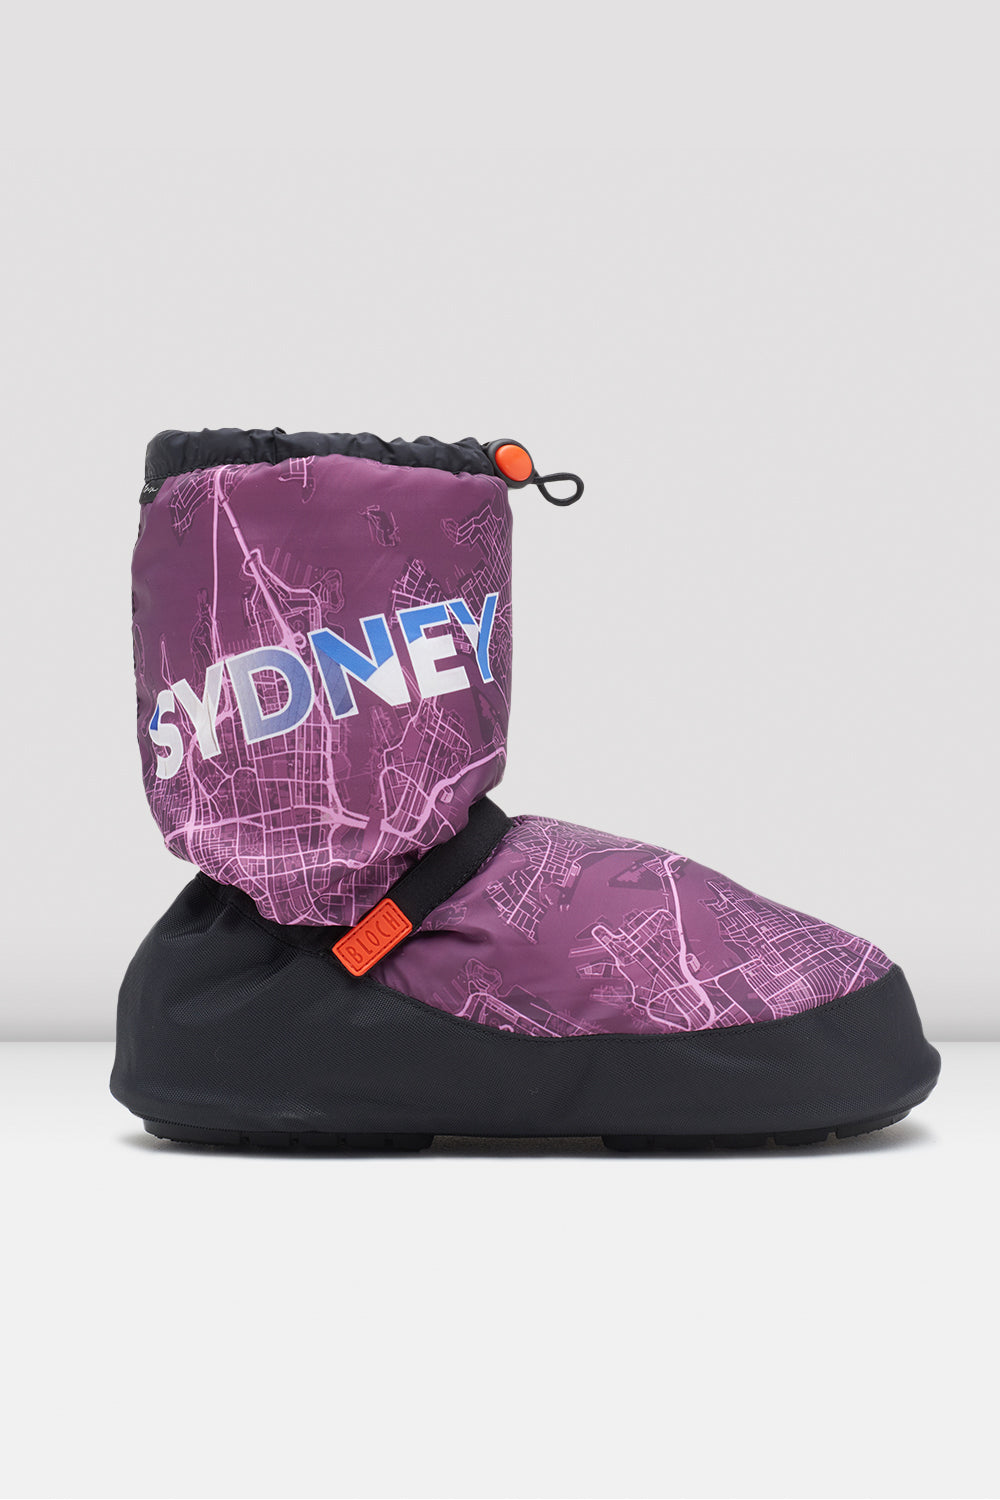 Sydney City Map Multi-function Warm Up Booties